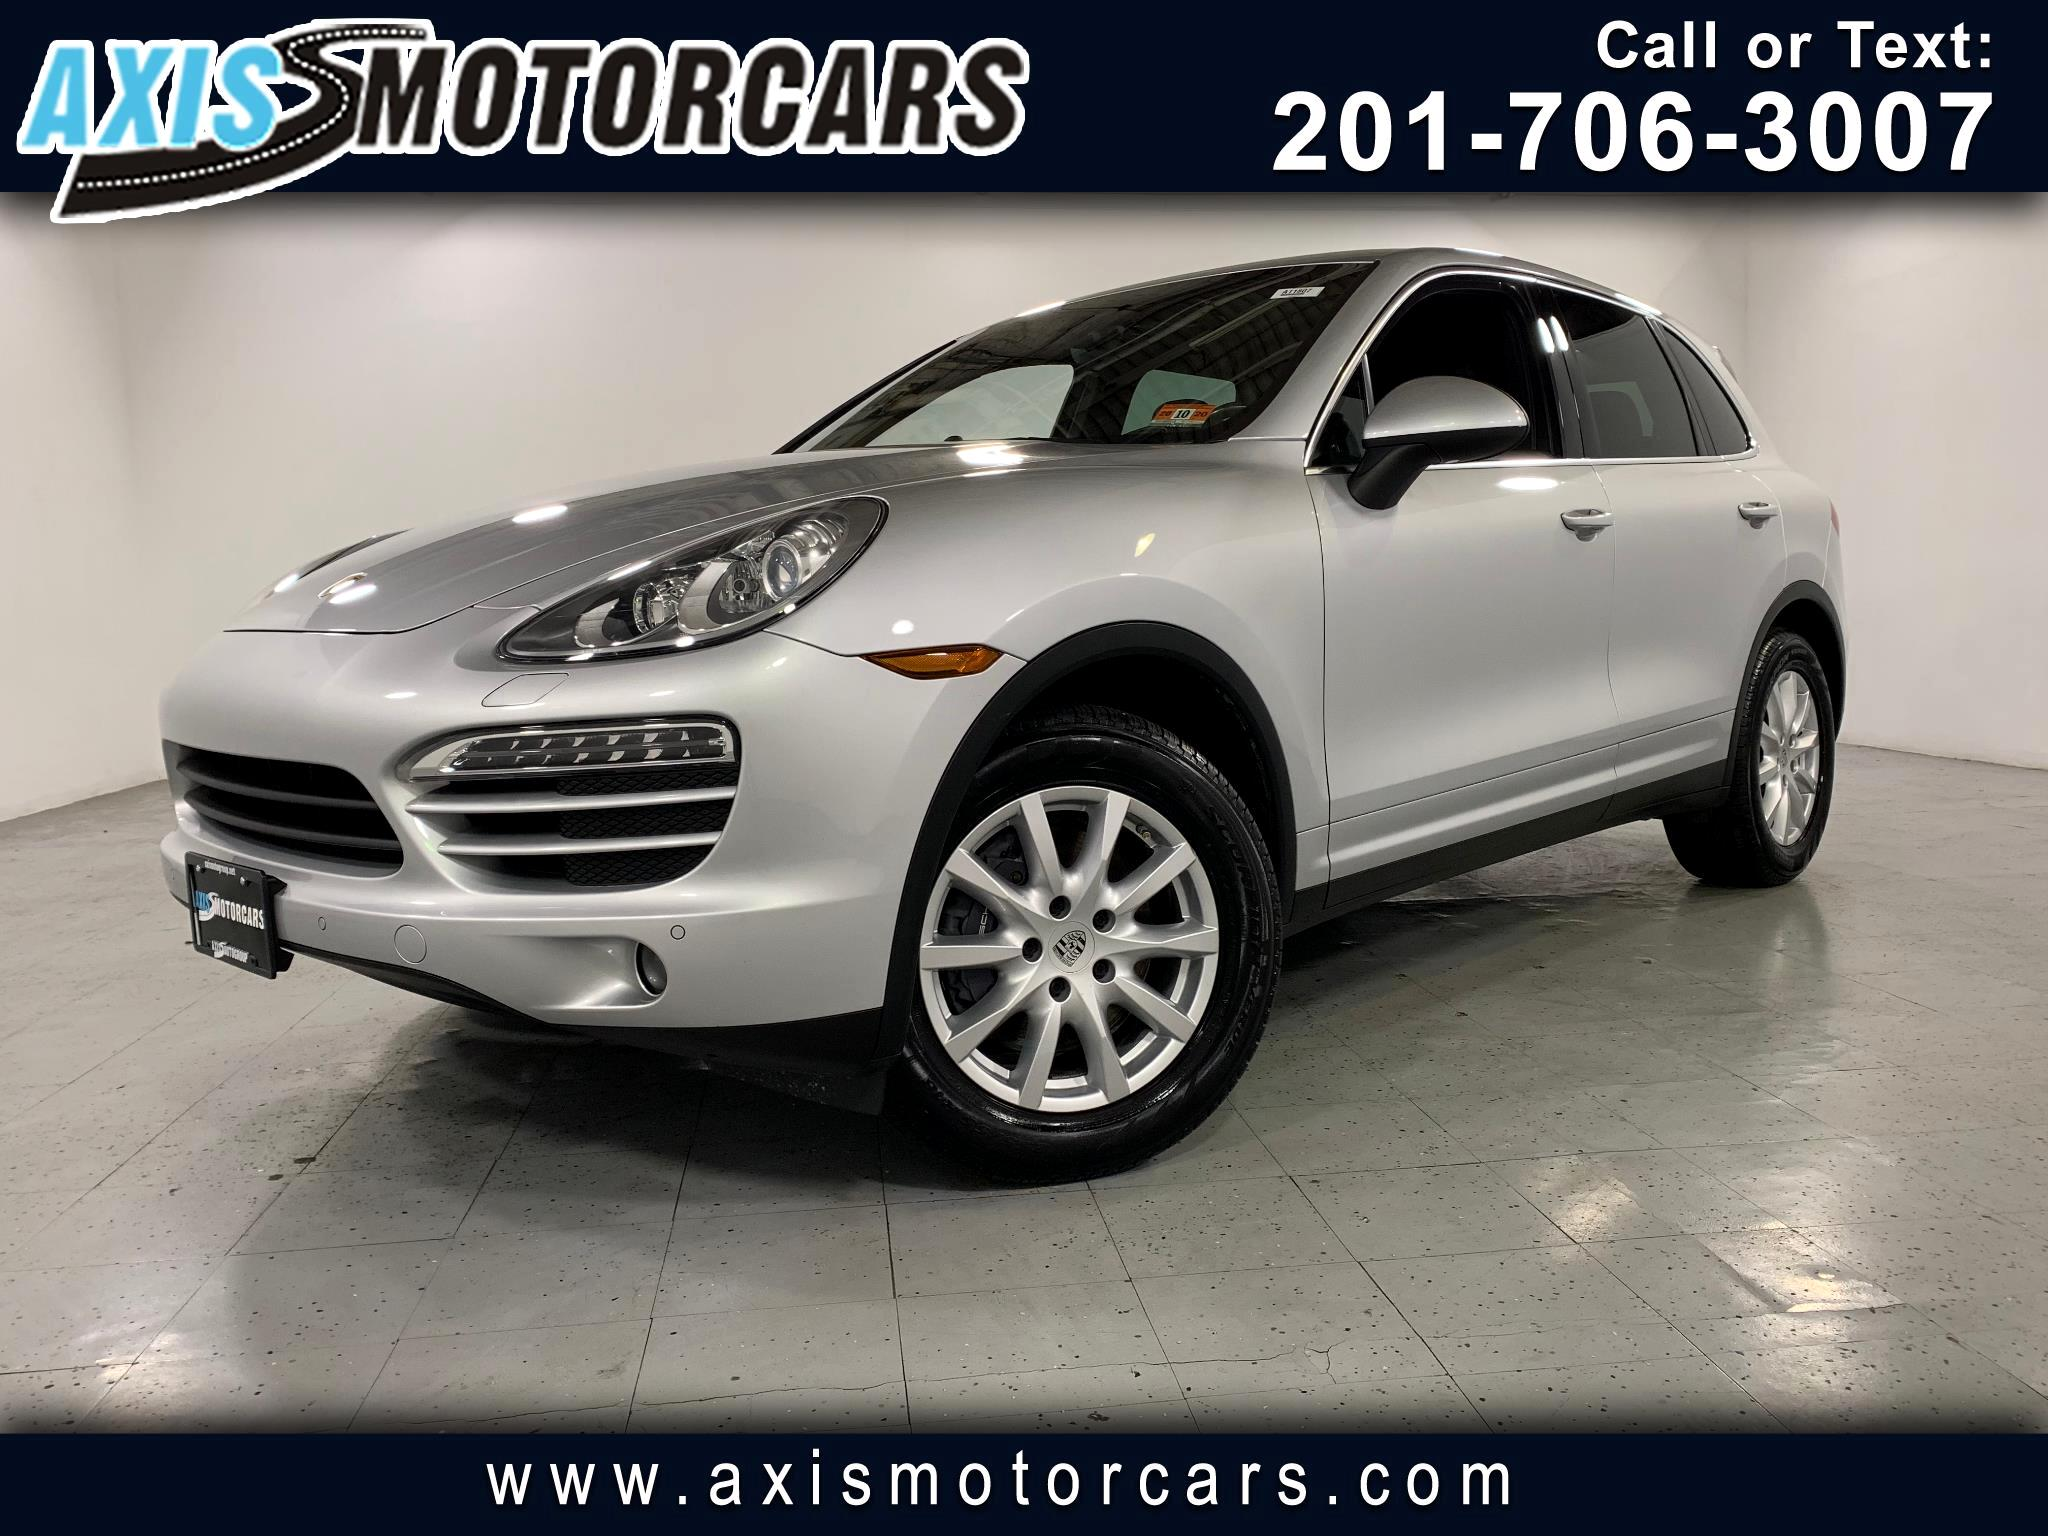 2012 Porsche Cayenne w/Panoramic Roof Navigation Backup Camera